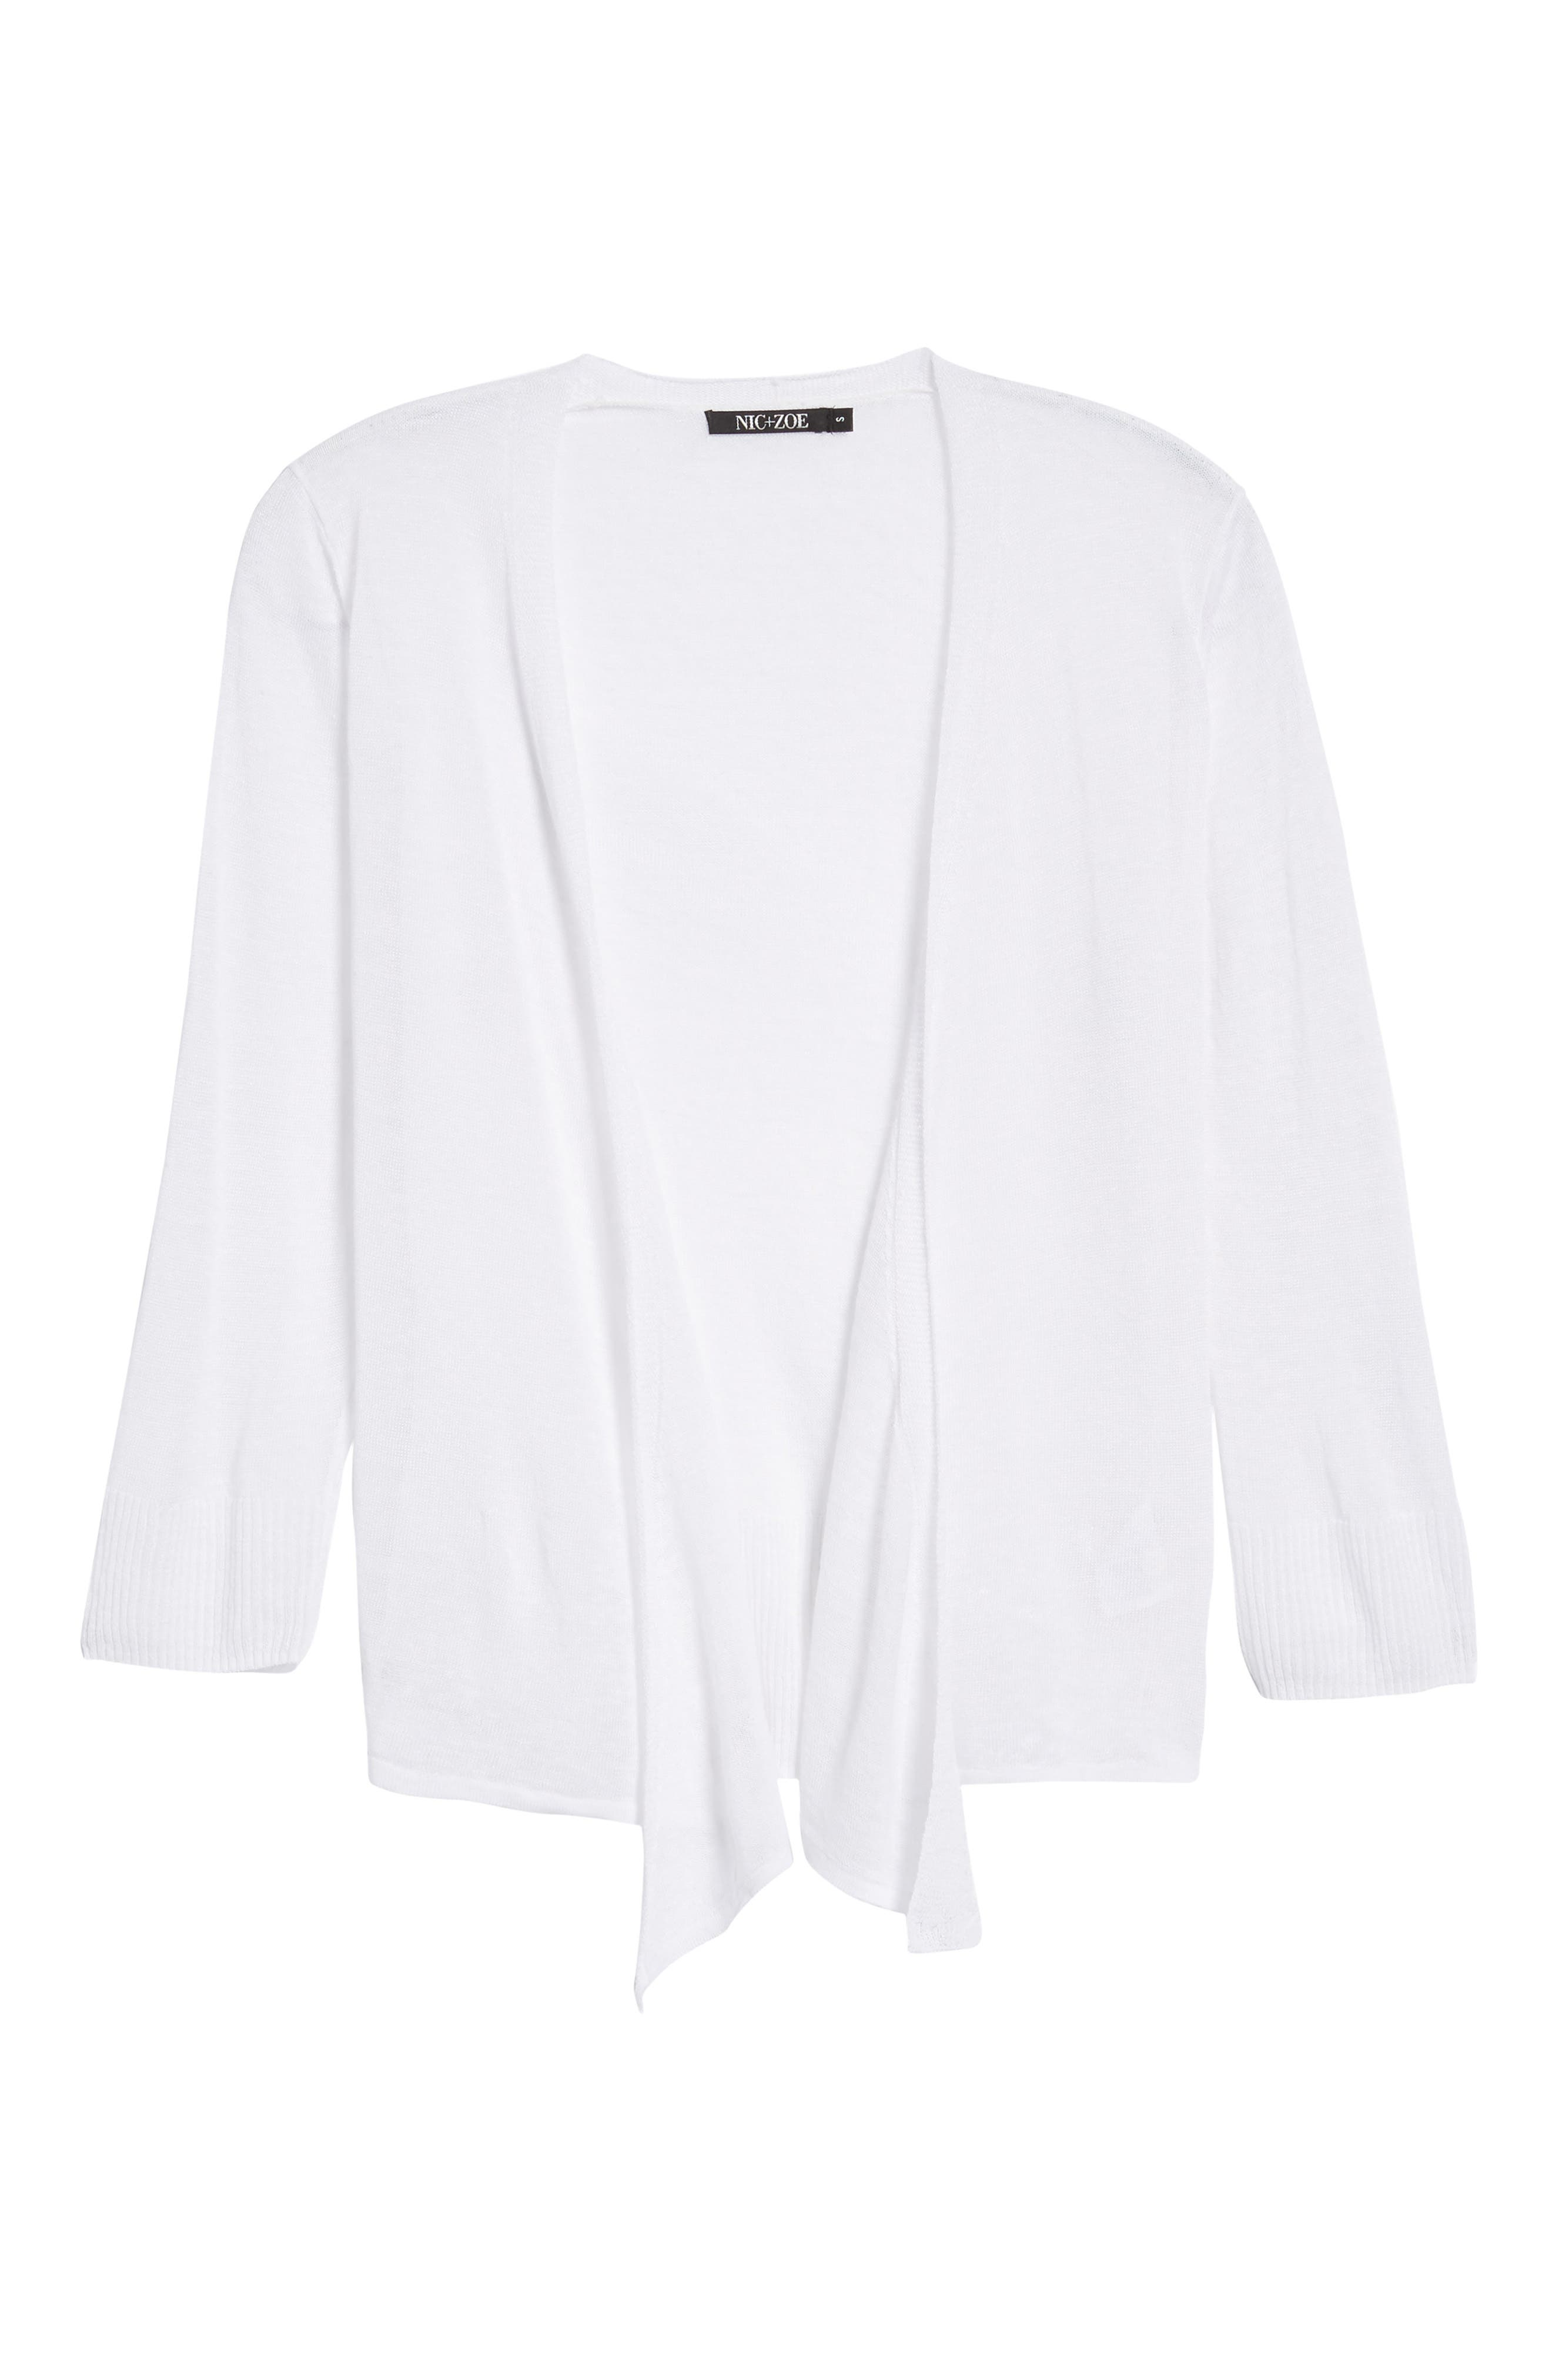 4-Way Convertible Three Quarter Sleeve Cardigan,                         Main,                         color, Paper White